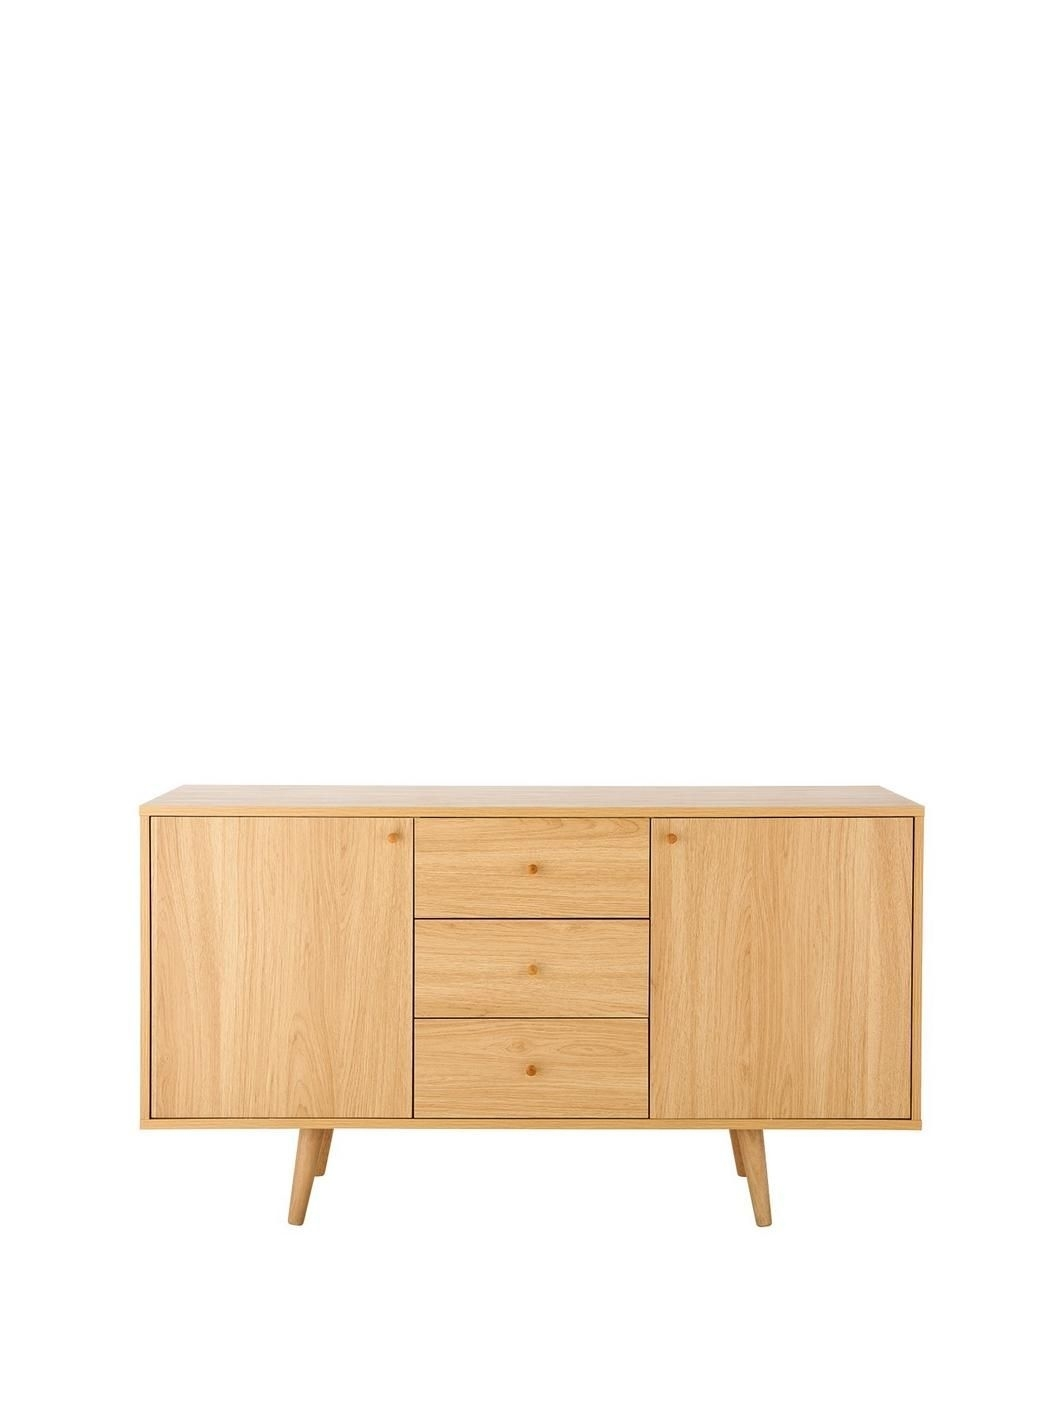 Inspiration about Ideal Home Monty Retro Large Sideboard | New Living Room | Pinterest Within Most Up To Date 3 Drawer/2 Door Sideboards (#12 of 20)